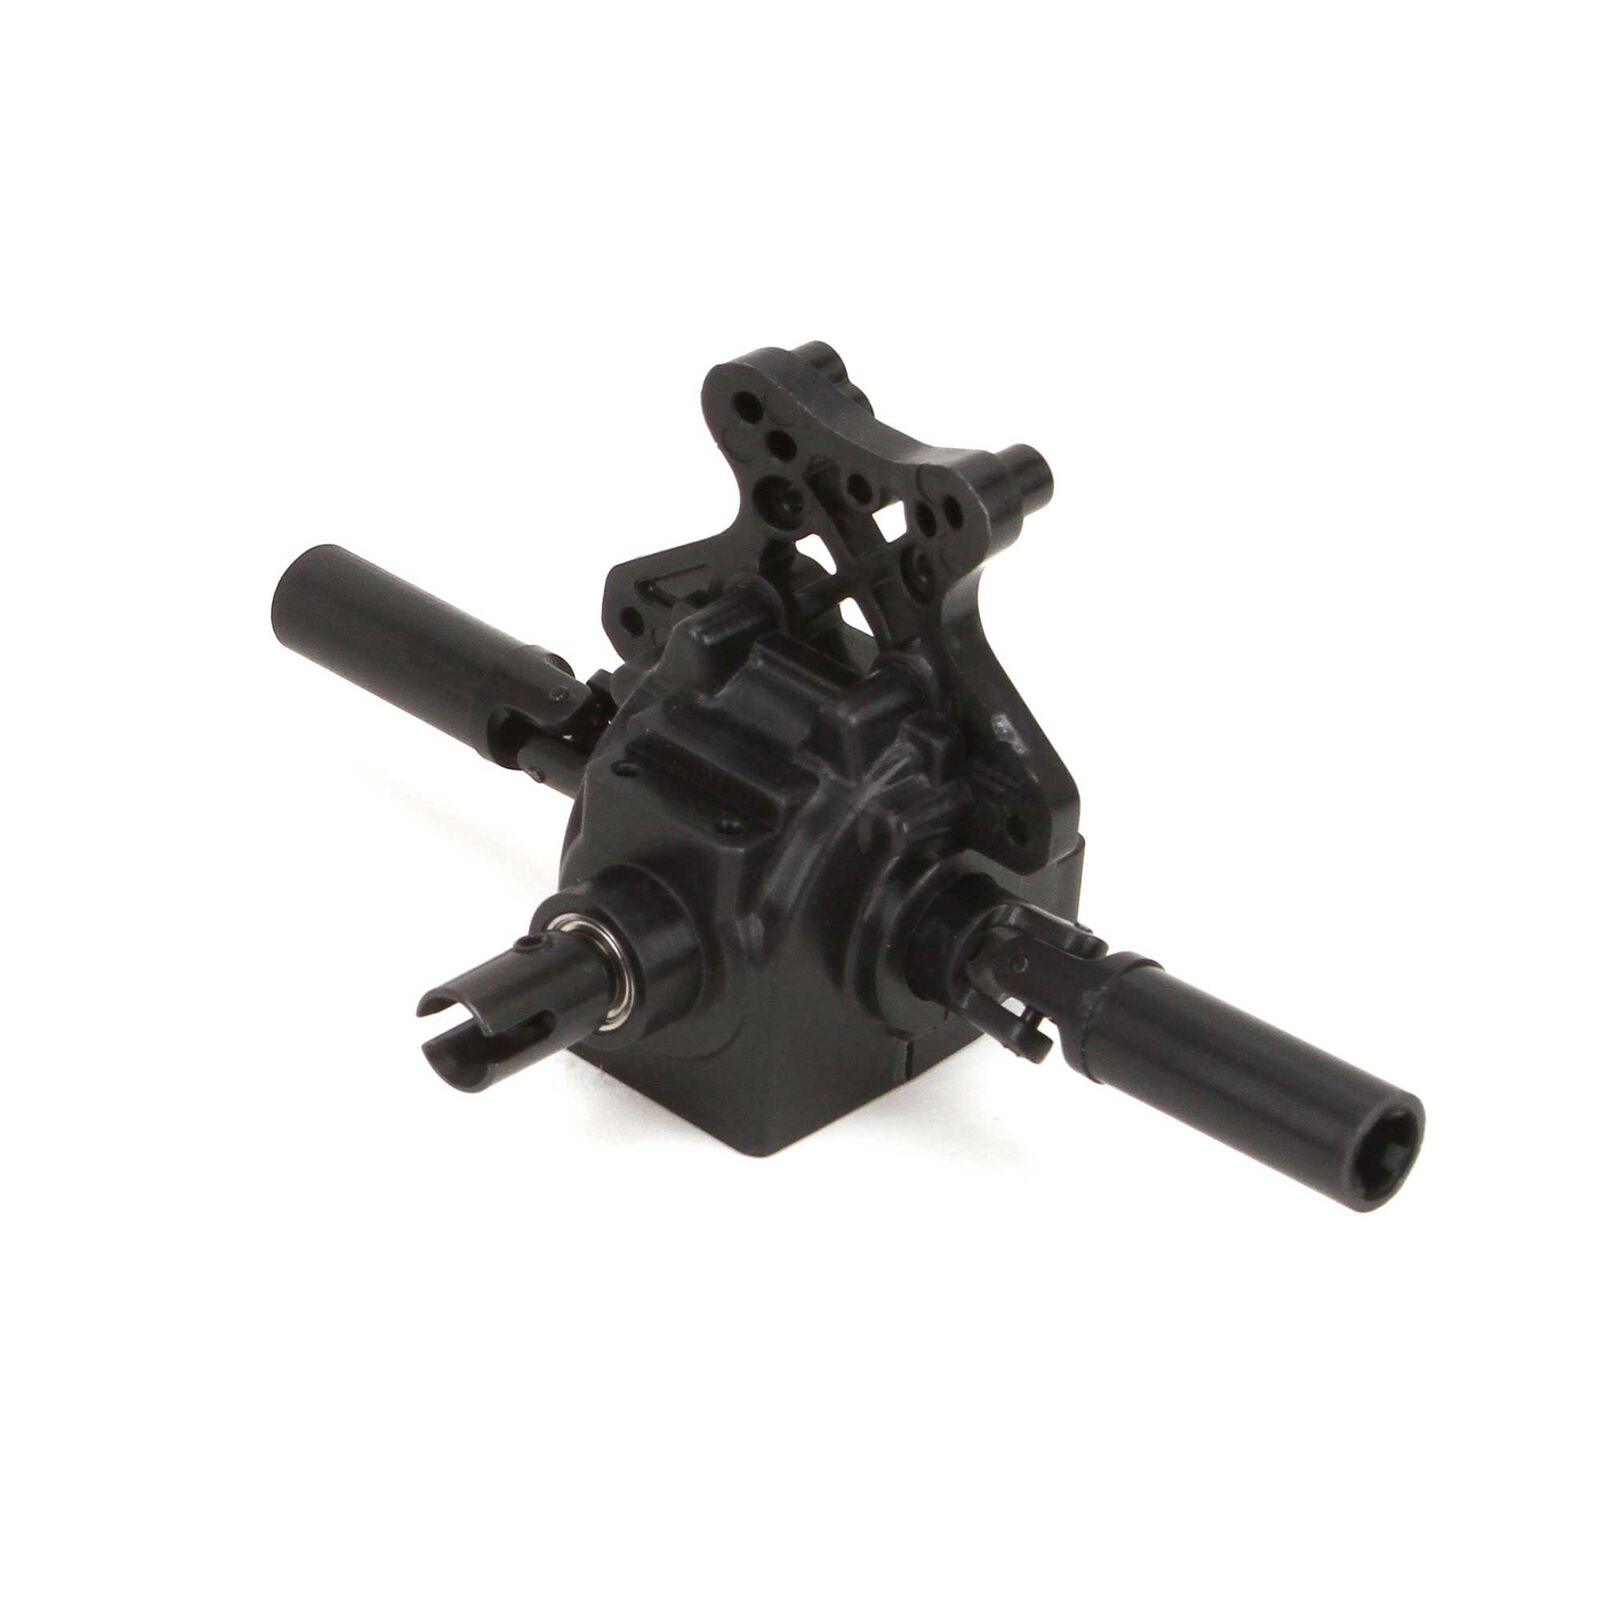 Assembled Transmission, Front: 1/18th 4WD All